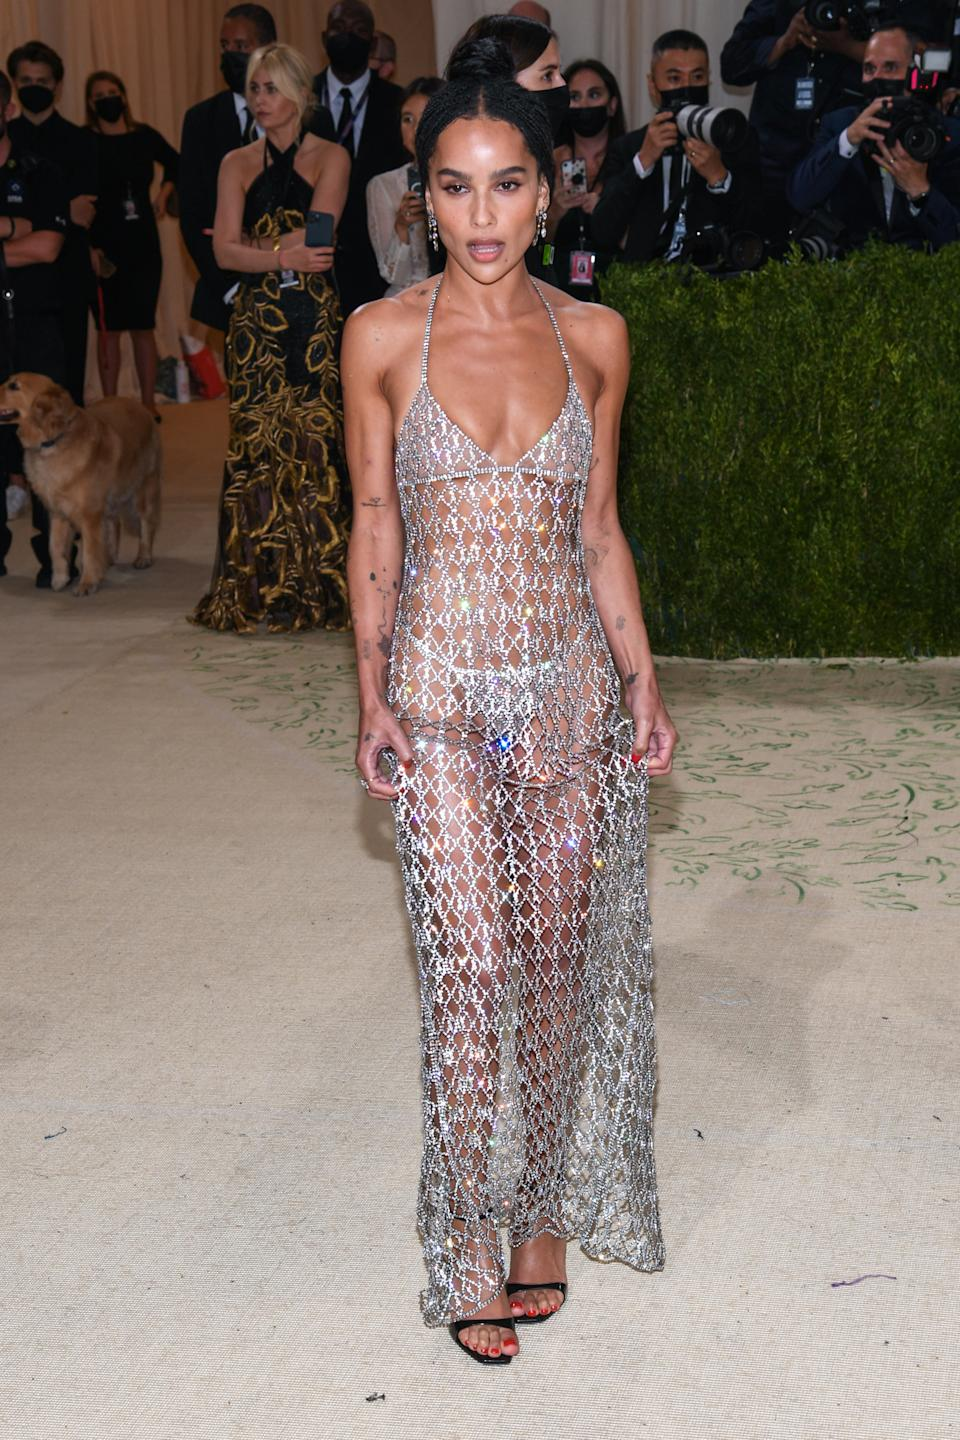 Zo� Kravitz walking on the red carpet at the 2021 Metropolitan Museum of Art Costume Institute Gala celebrating the opening of the exhibition titled In America: A Lexicon of Fashion held at the Metropolitan Museum of Art in New York, NY on September 13, 2021. (Photo by Anthony Behar/Sipa USA)